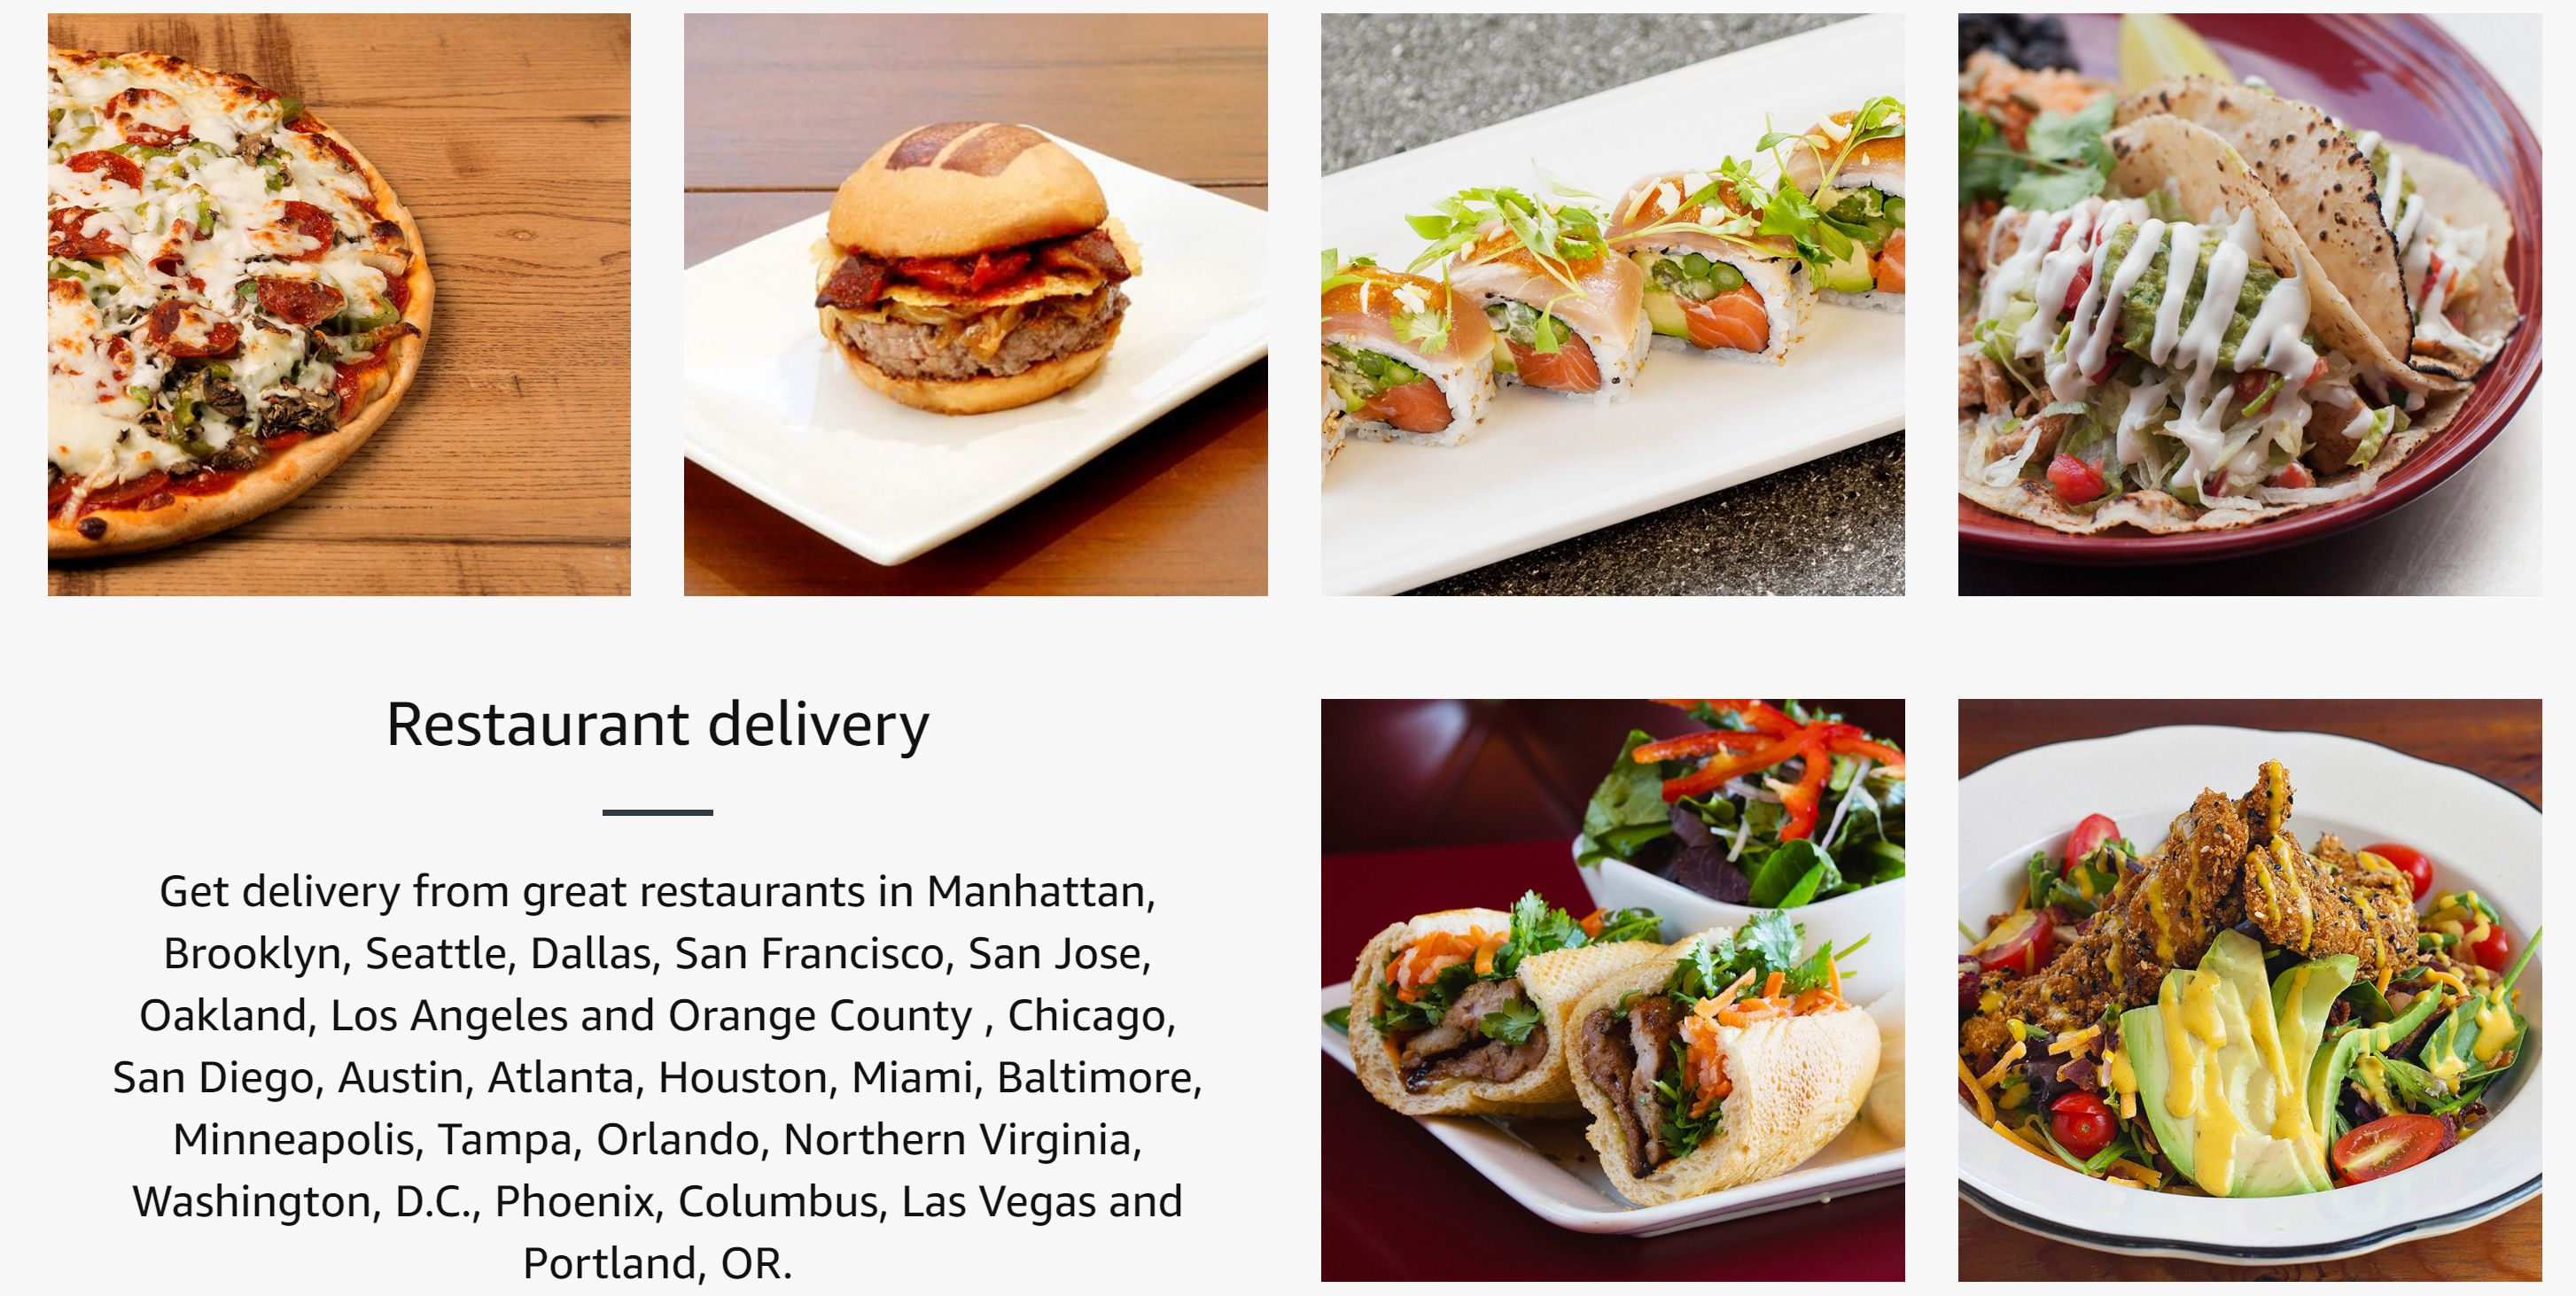 Prime Now Restaurant Delivery Section Of The Website